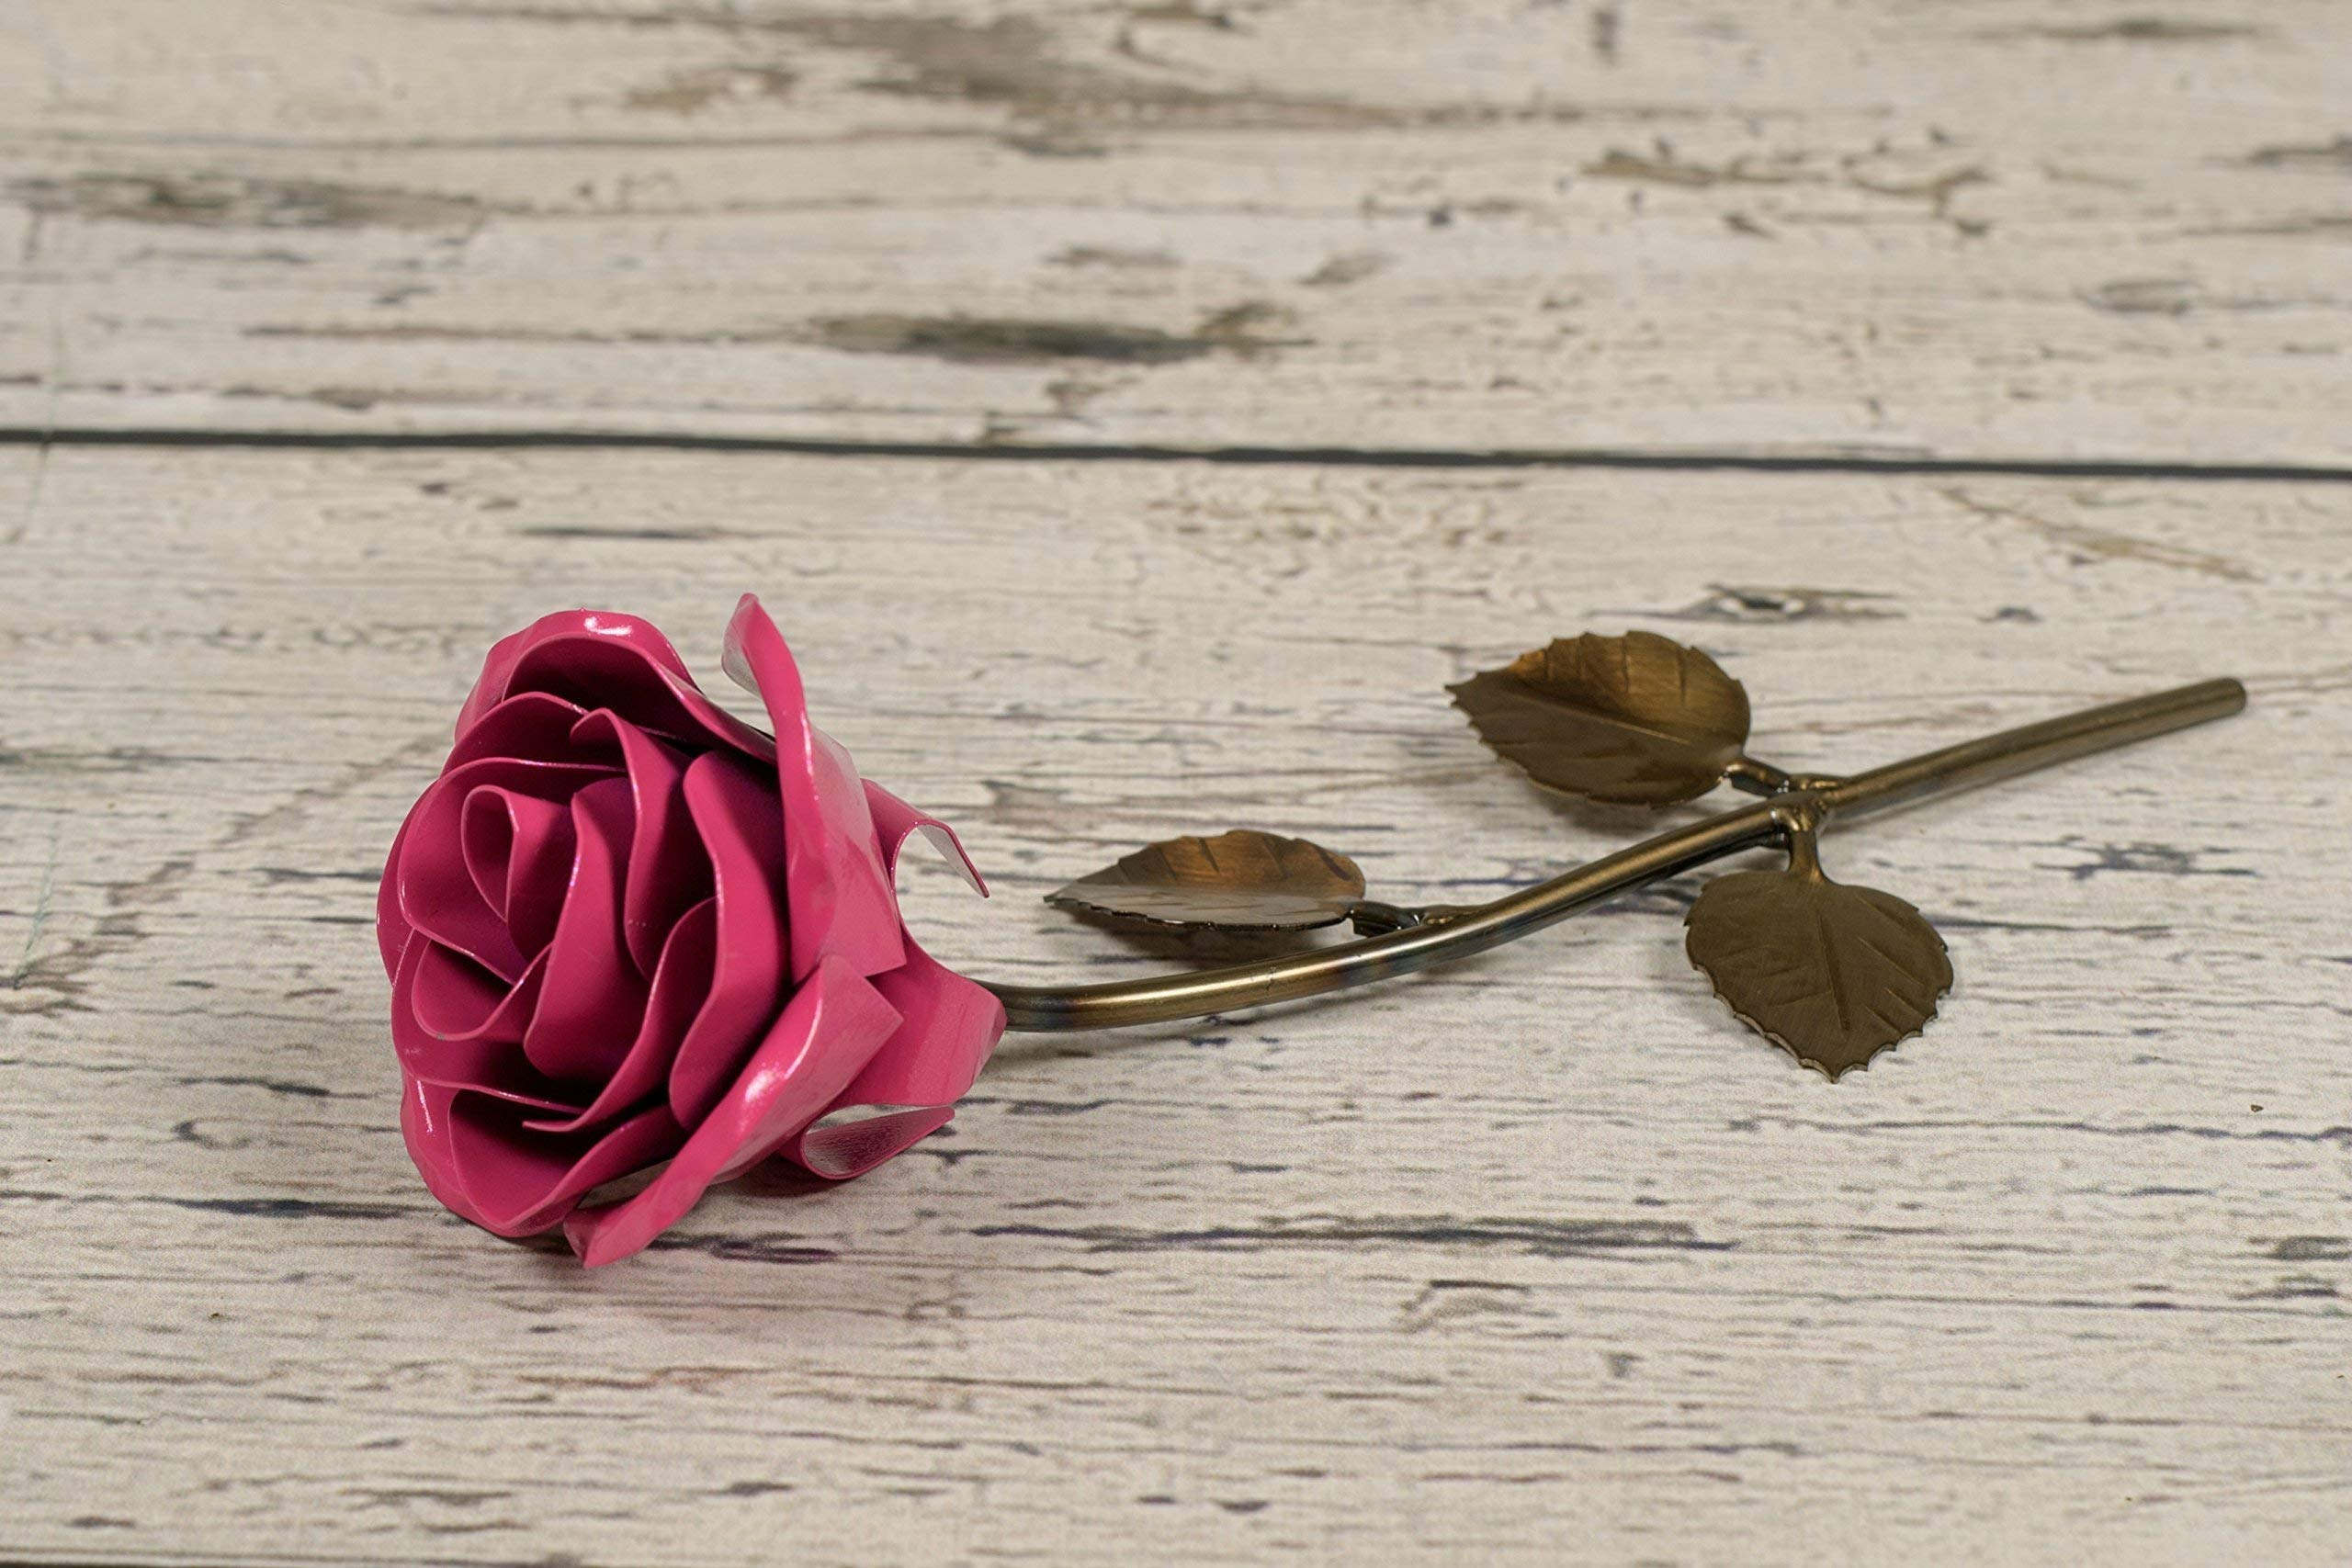 silk flower arrangements personalized gift hand-forged wrought iron pink metal rose - valentine's day gift